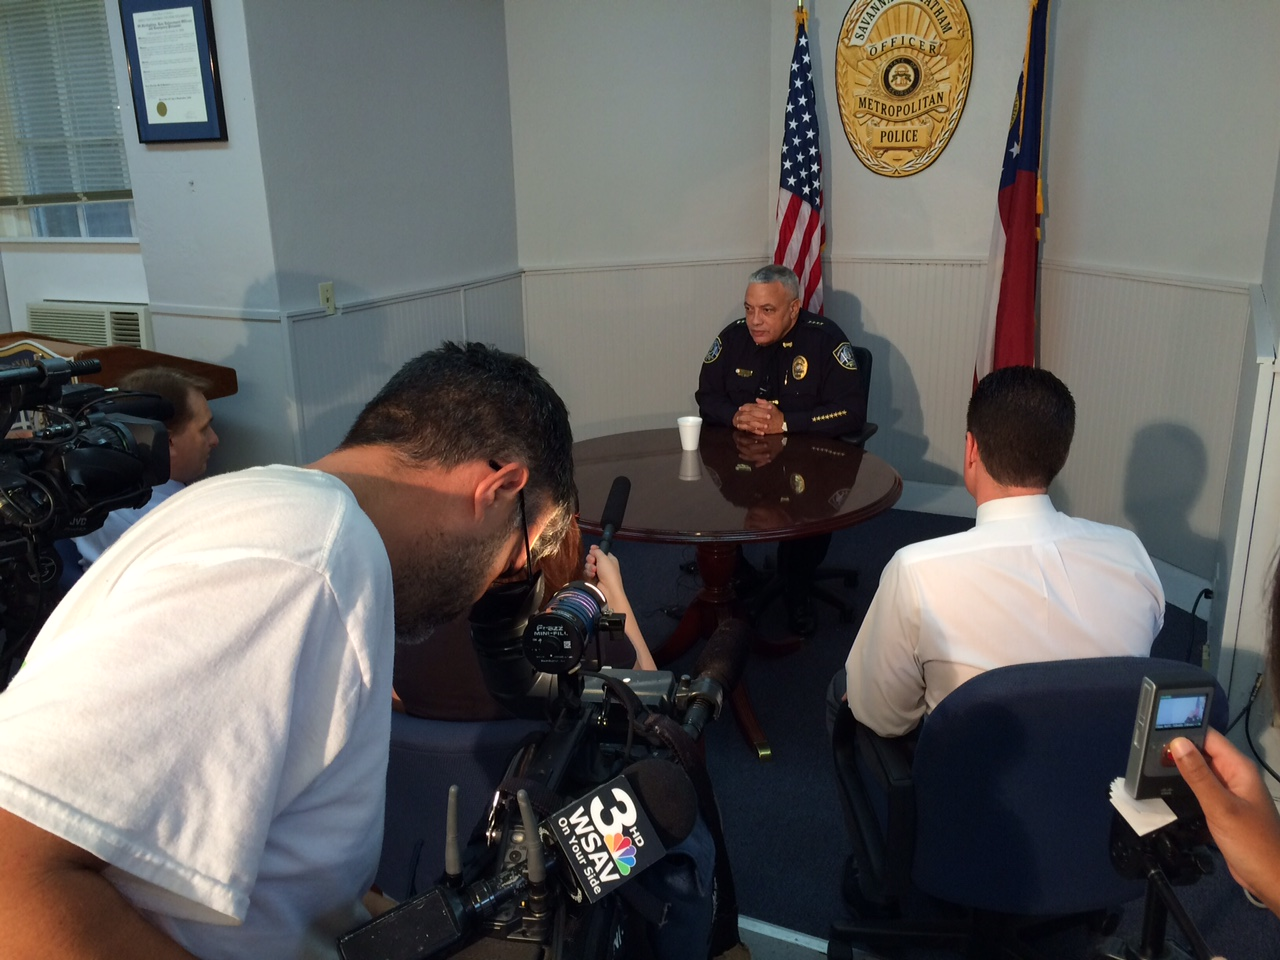 Chief Lumpkin Discusses Recent Ny Trip For Operation Ceasefire